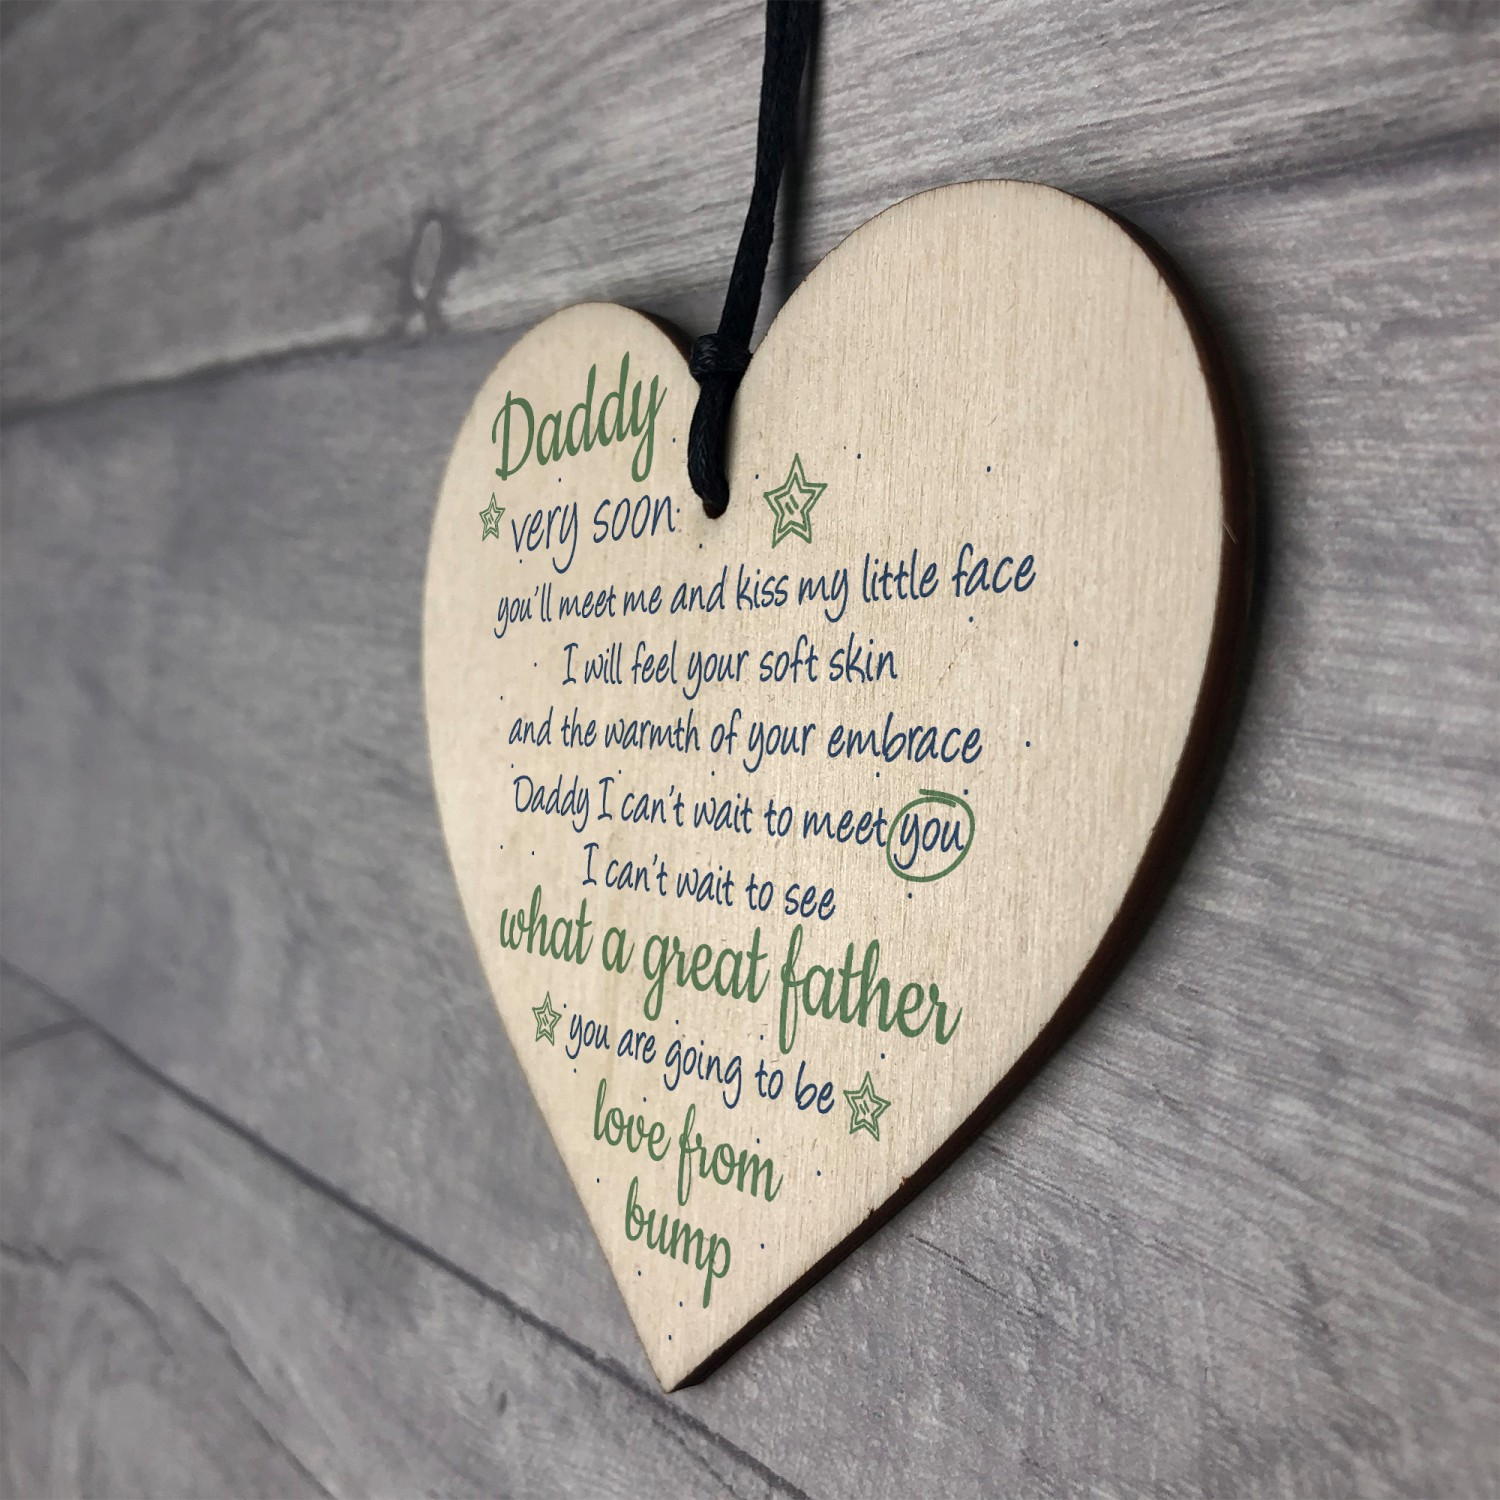 & Handmade Heart From Bump Gifts Dad Daddy To Be Father Baby Son